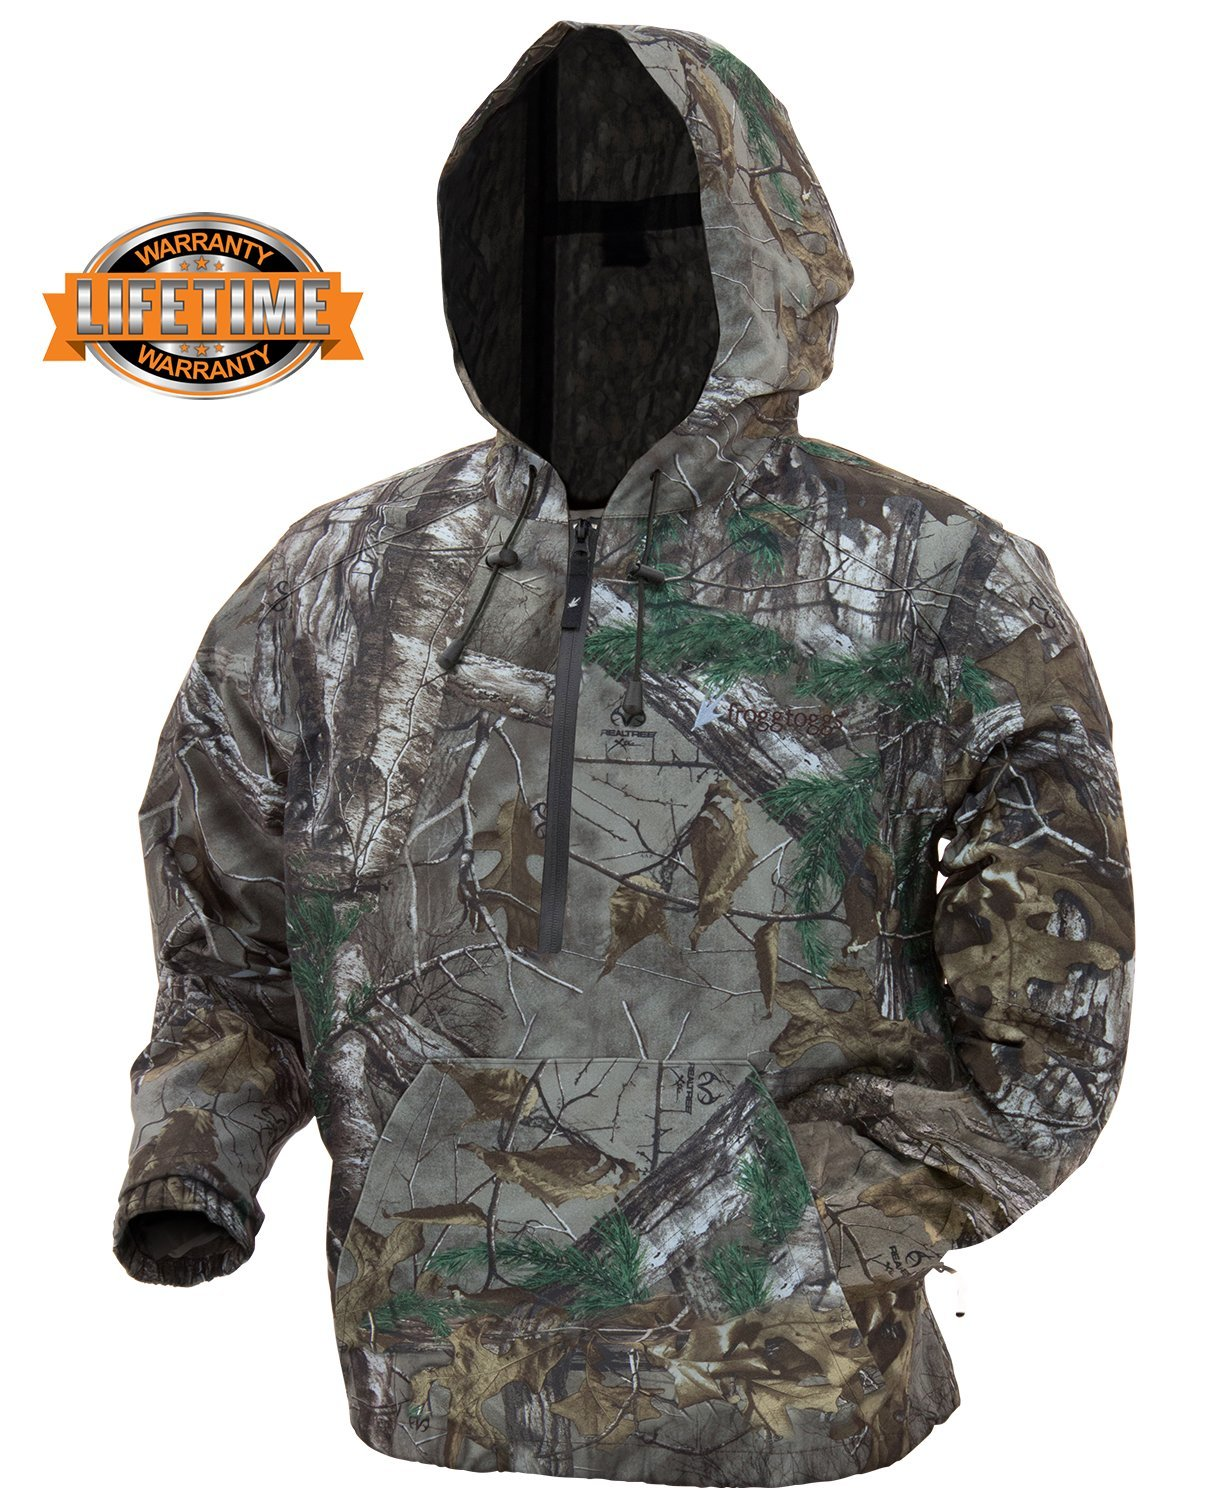 Frogg Toggs Dead Silence Brushed Camo Pullover Hoodie, Mossy Oak Bottomland, Size Medium Dead Silence Brushed Camo Pullover Hoodie, Water-Resistant, Mossy Oak Bottomland, Medium